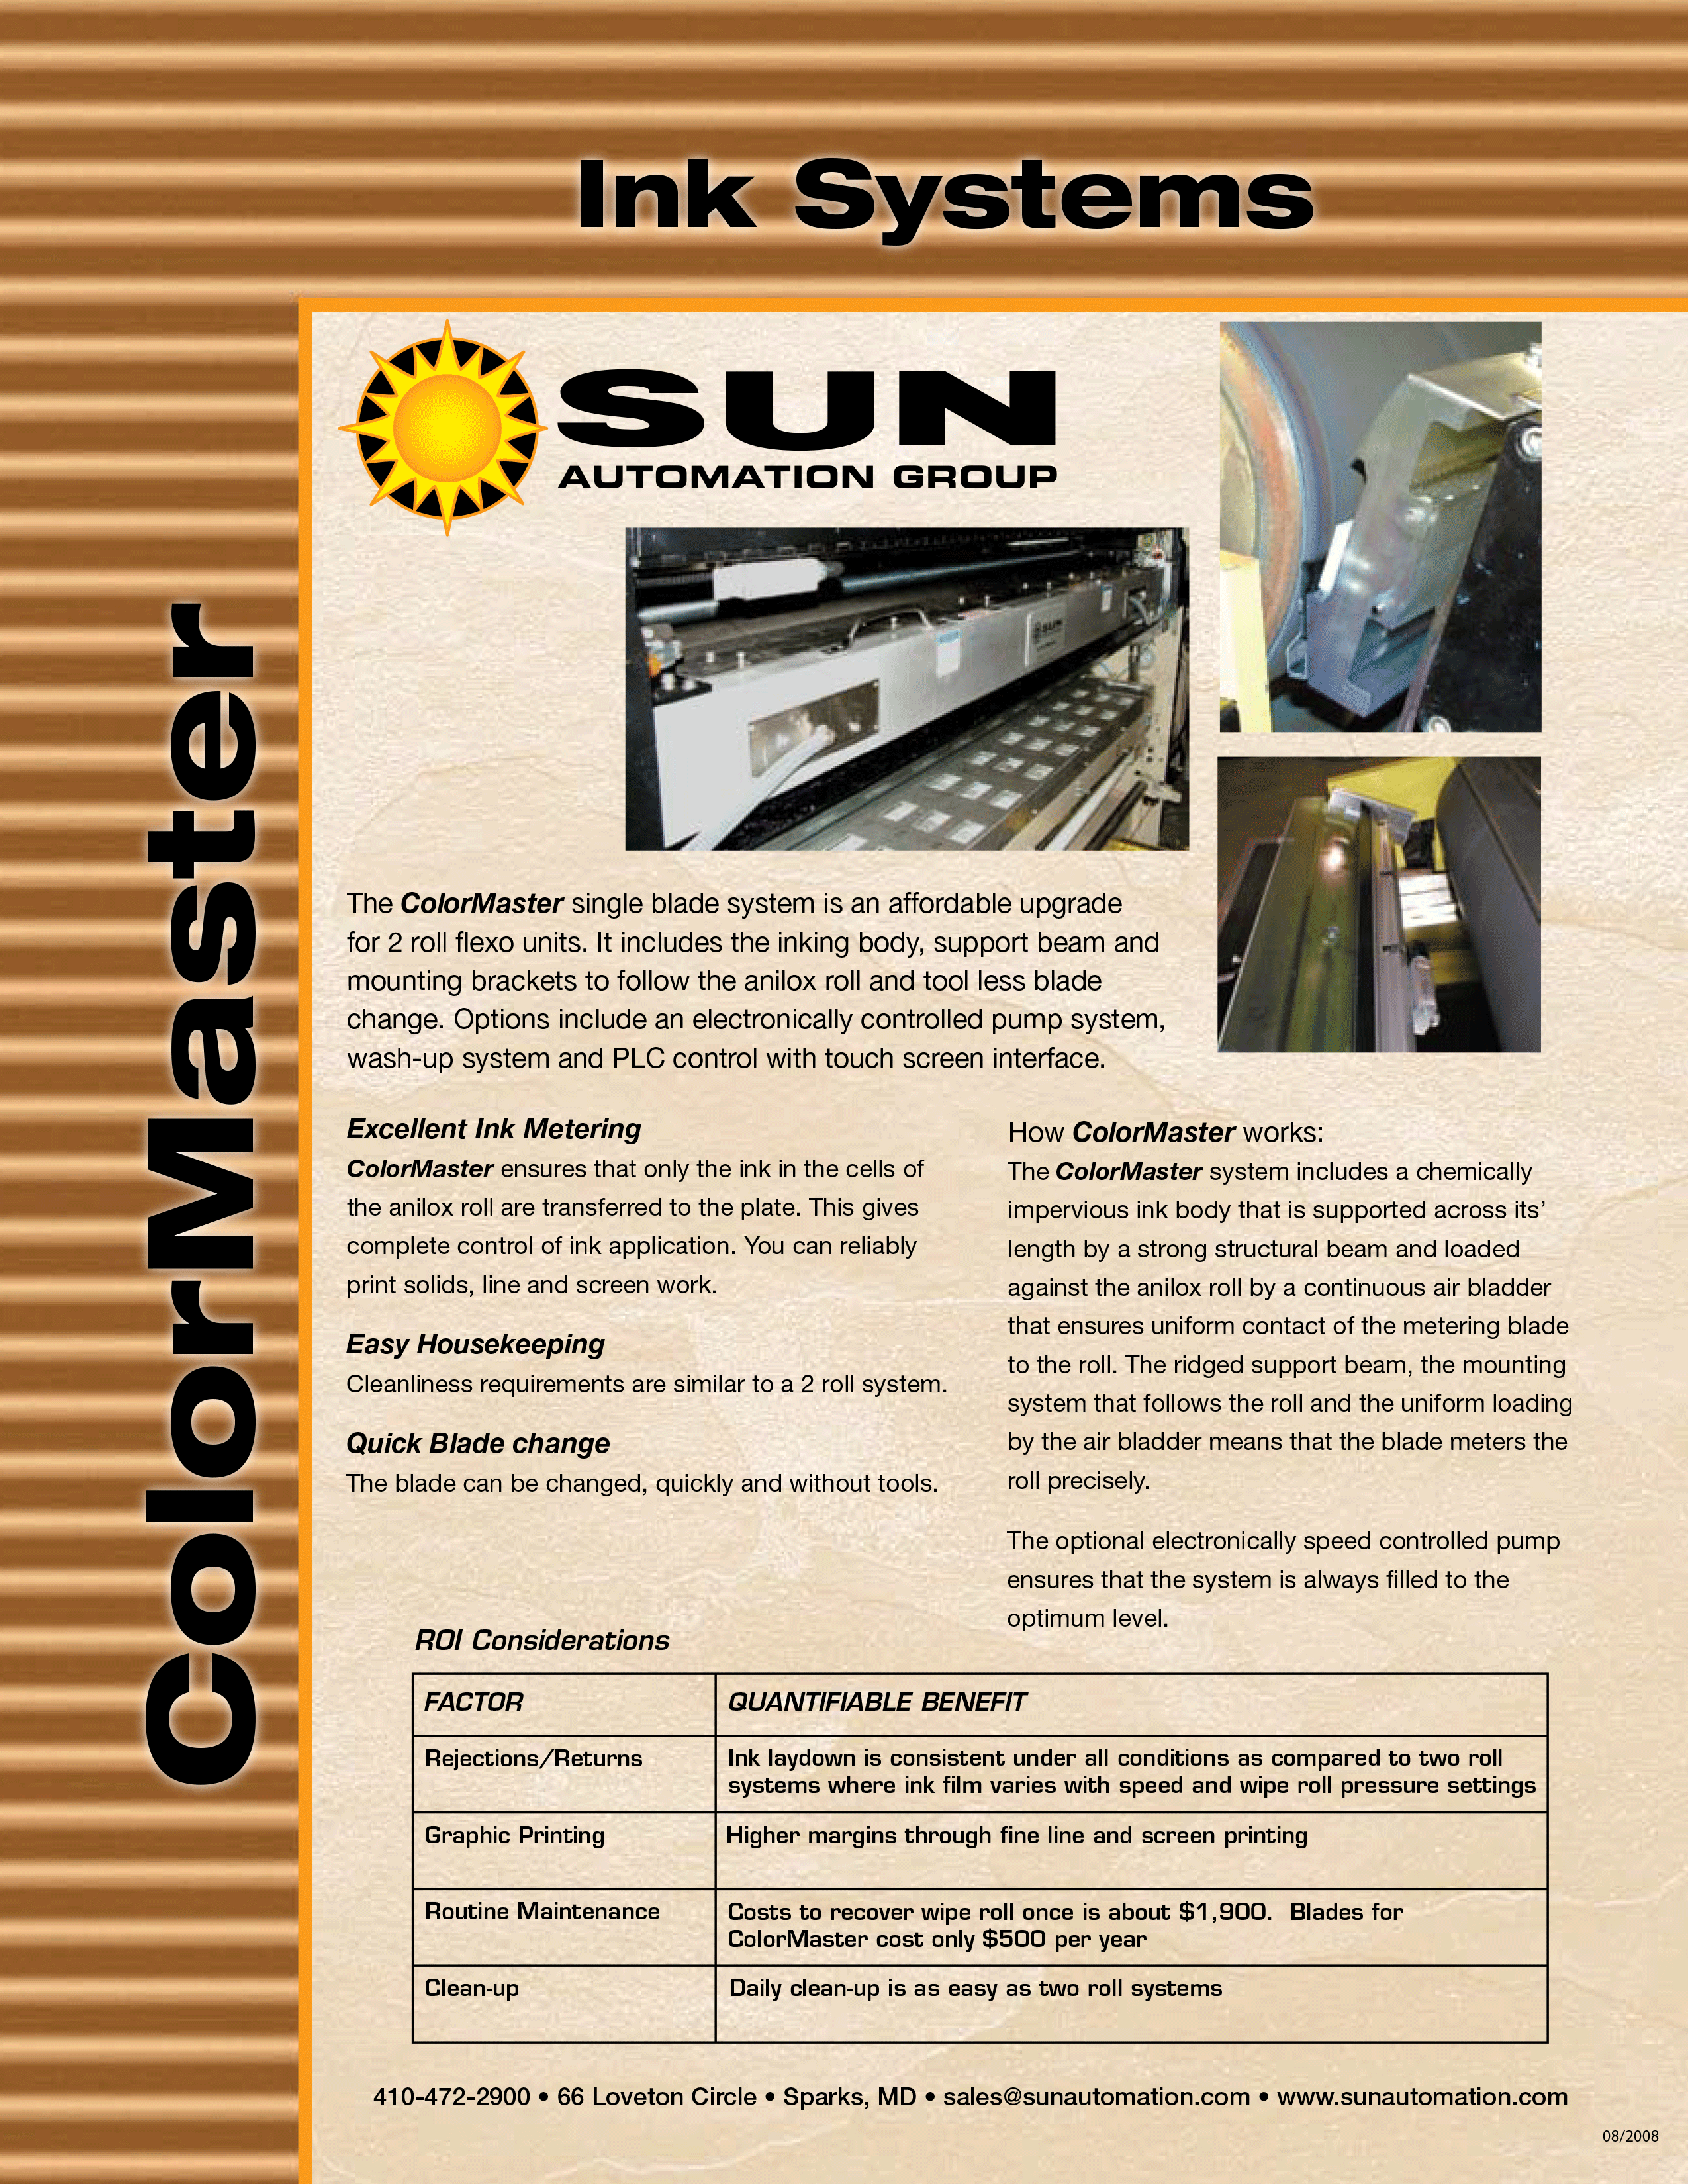 Learn more about Sun Automation's ColorMaster Single Blade System in their brochure.